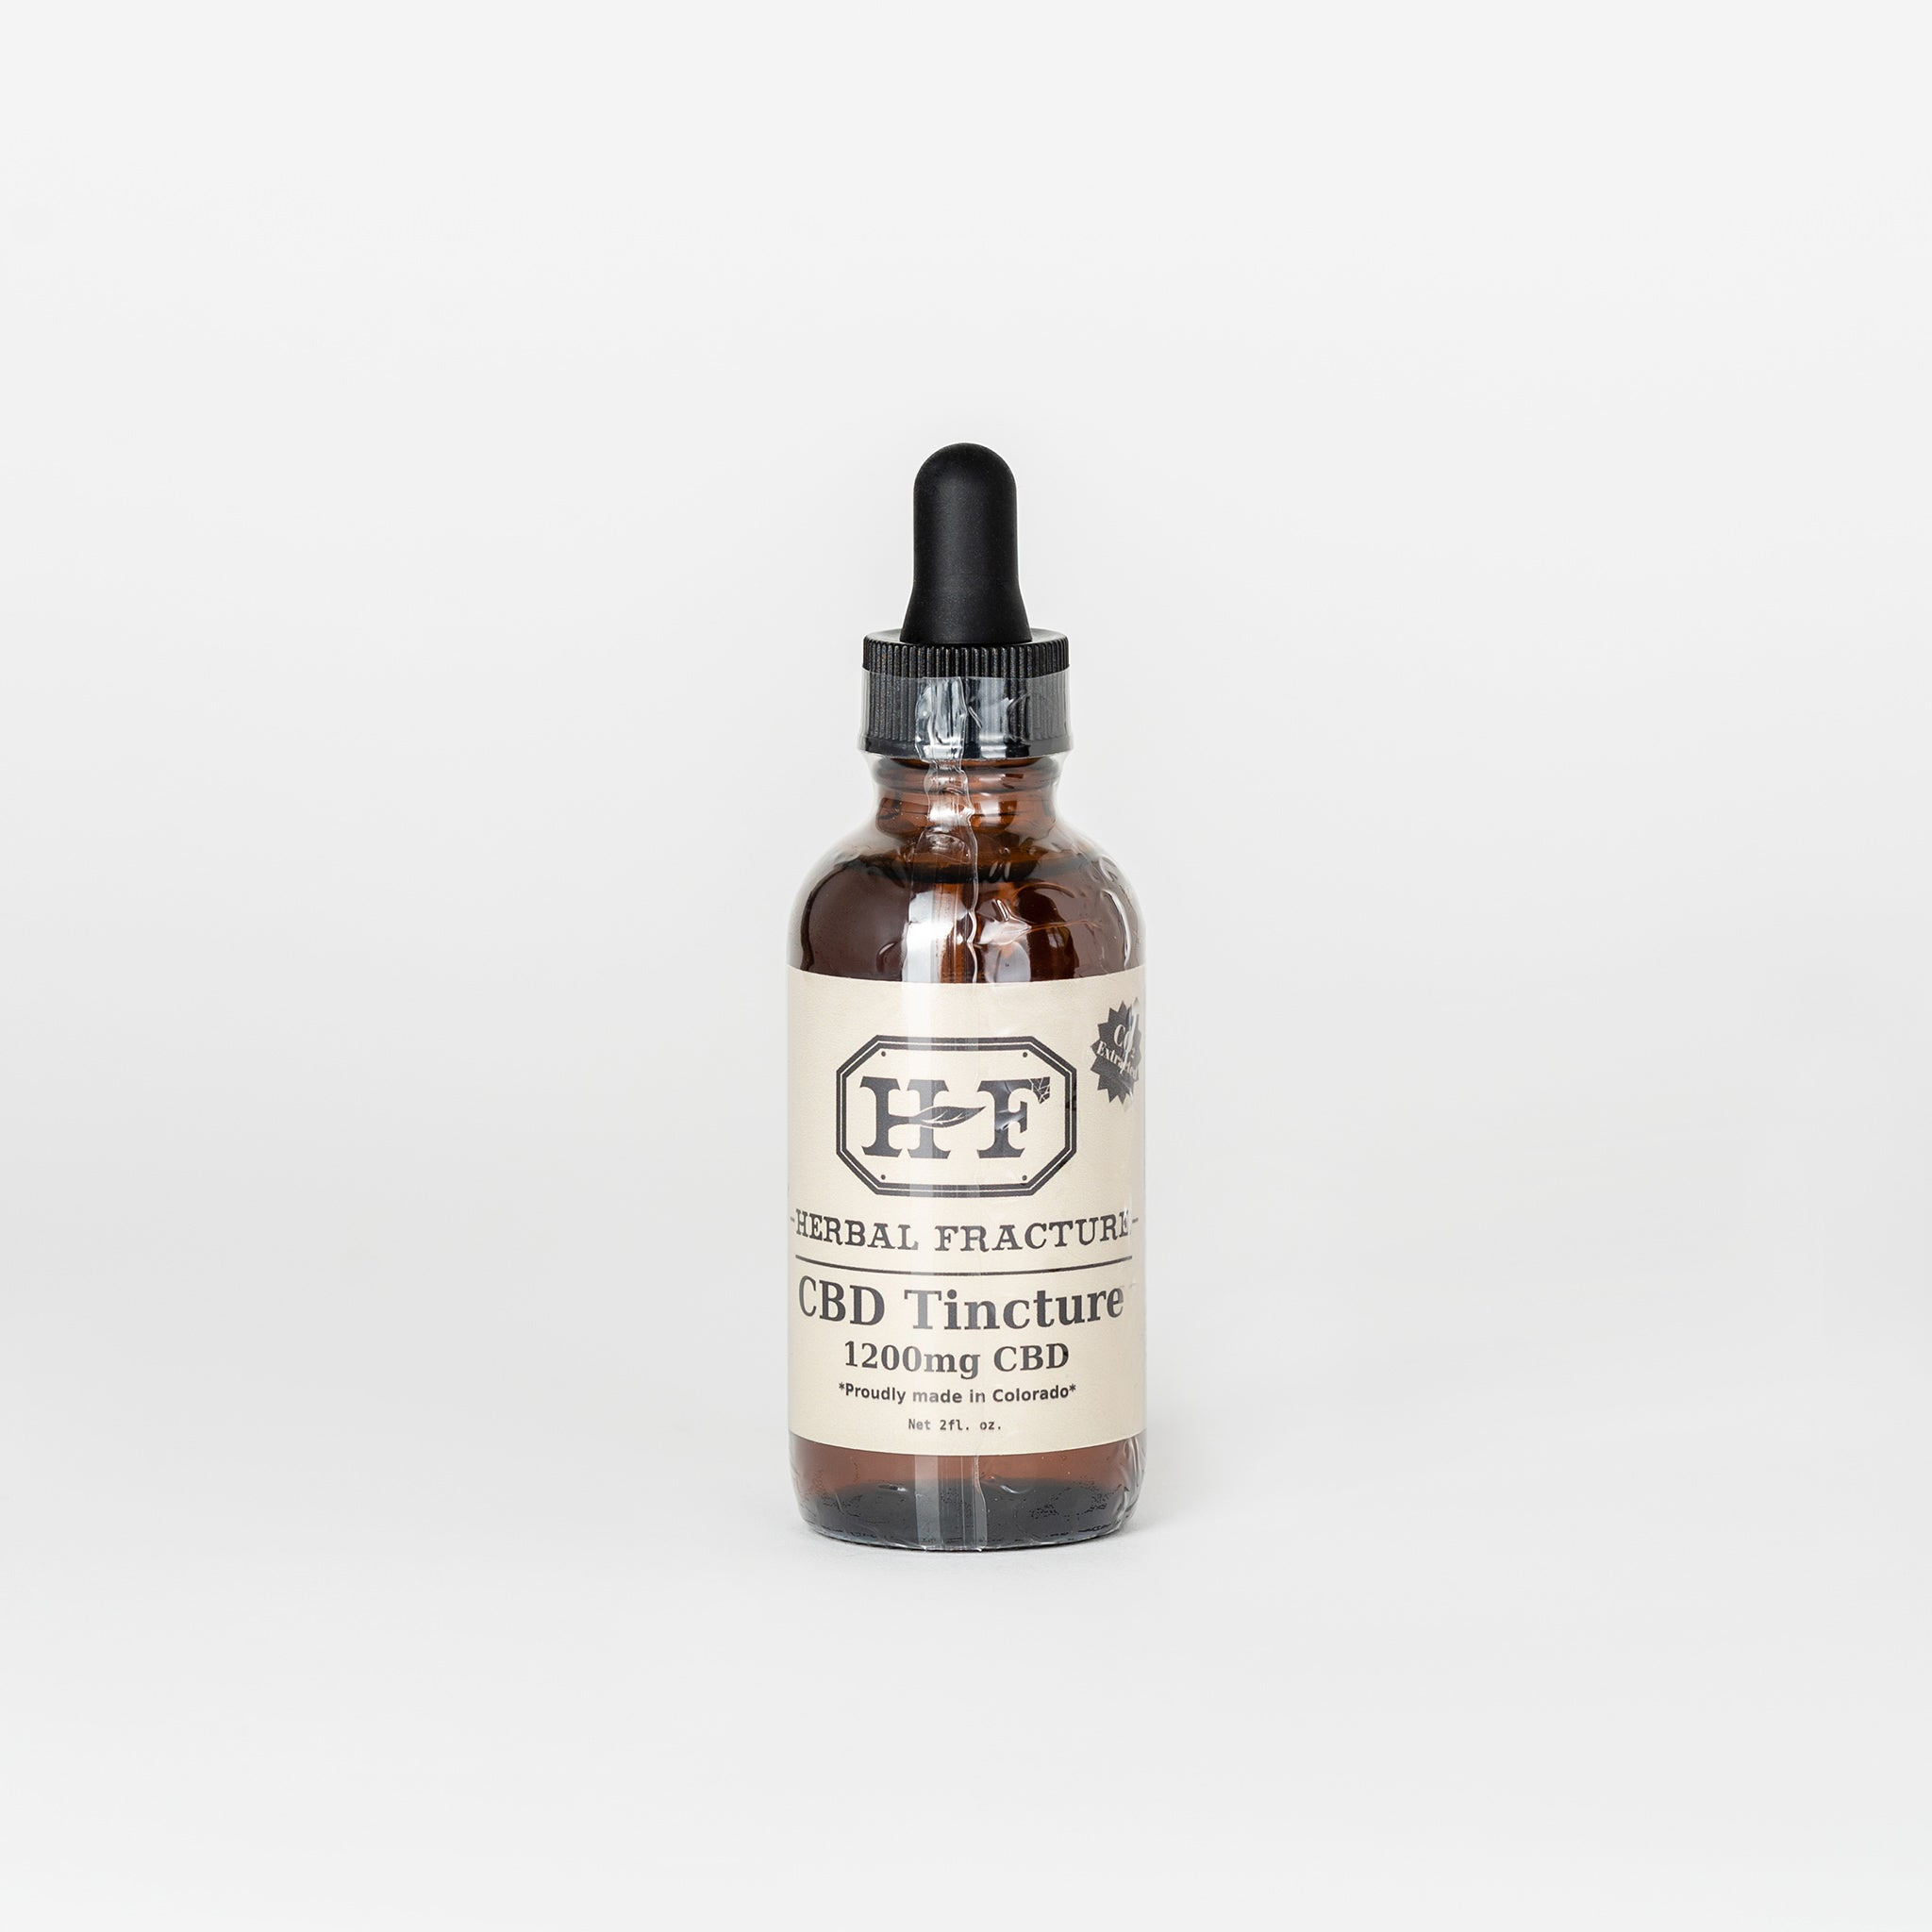 Herbal Fracture Full Spectrum CBD Tincture - Alleviate Wellness